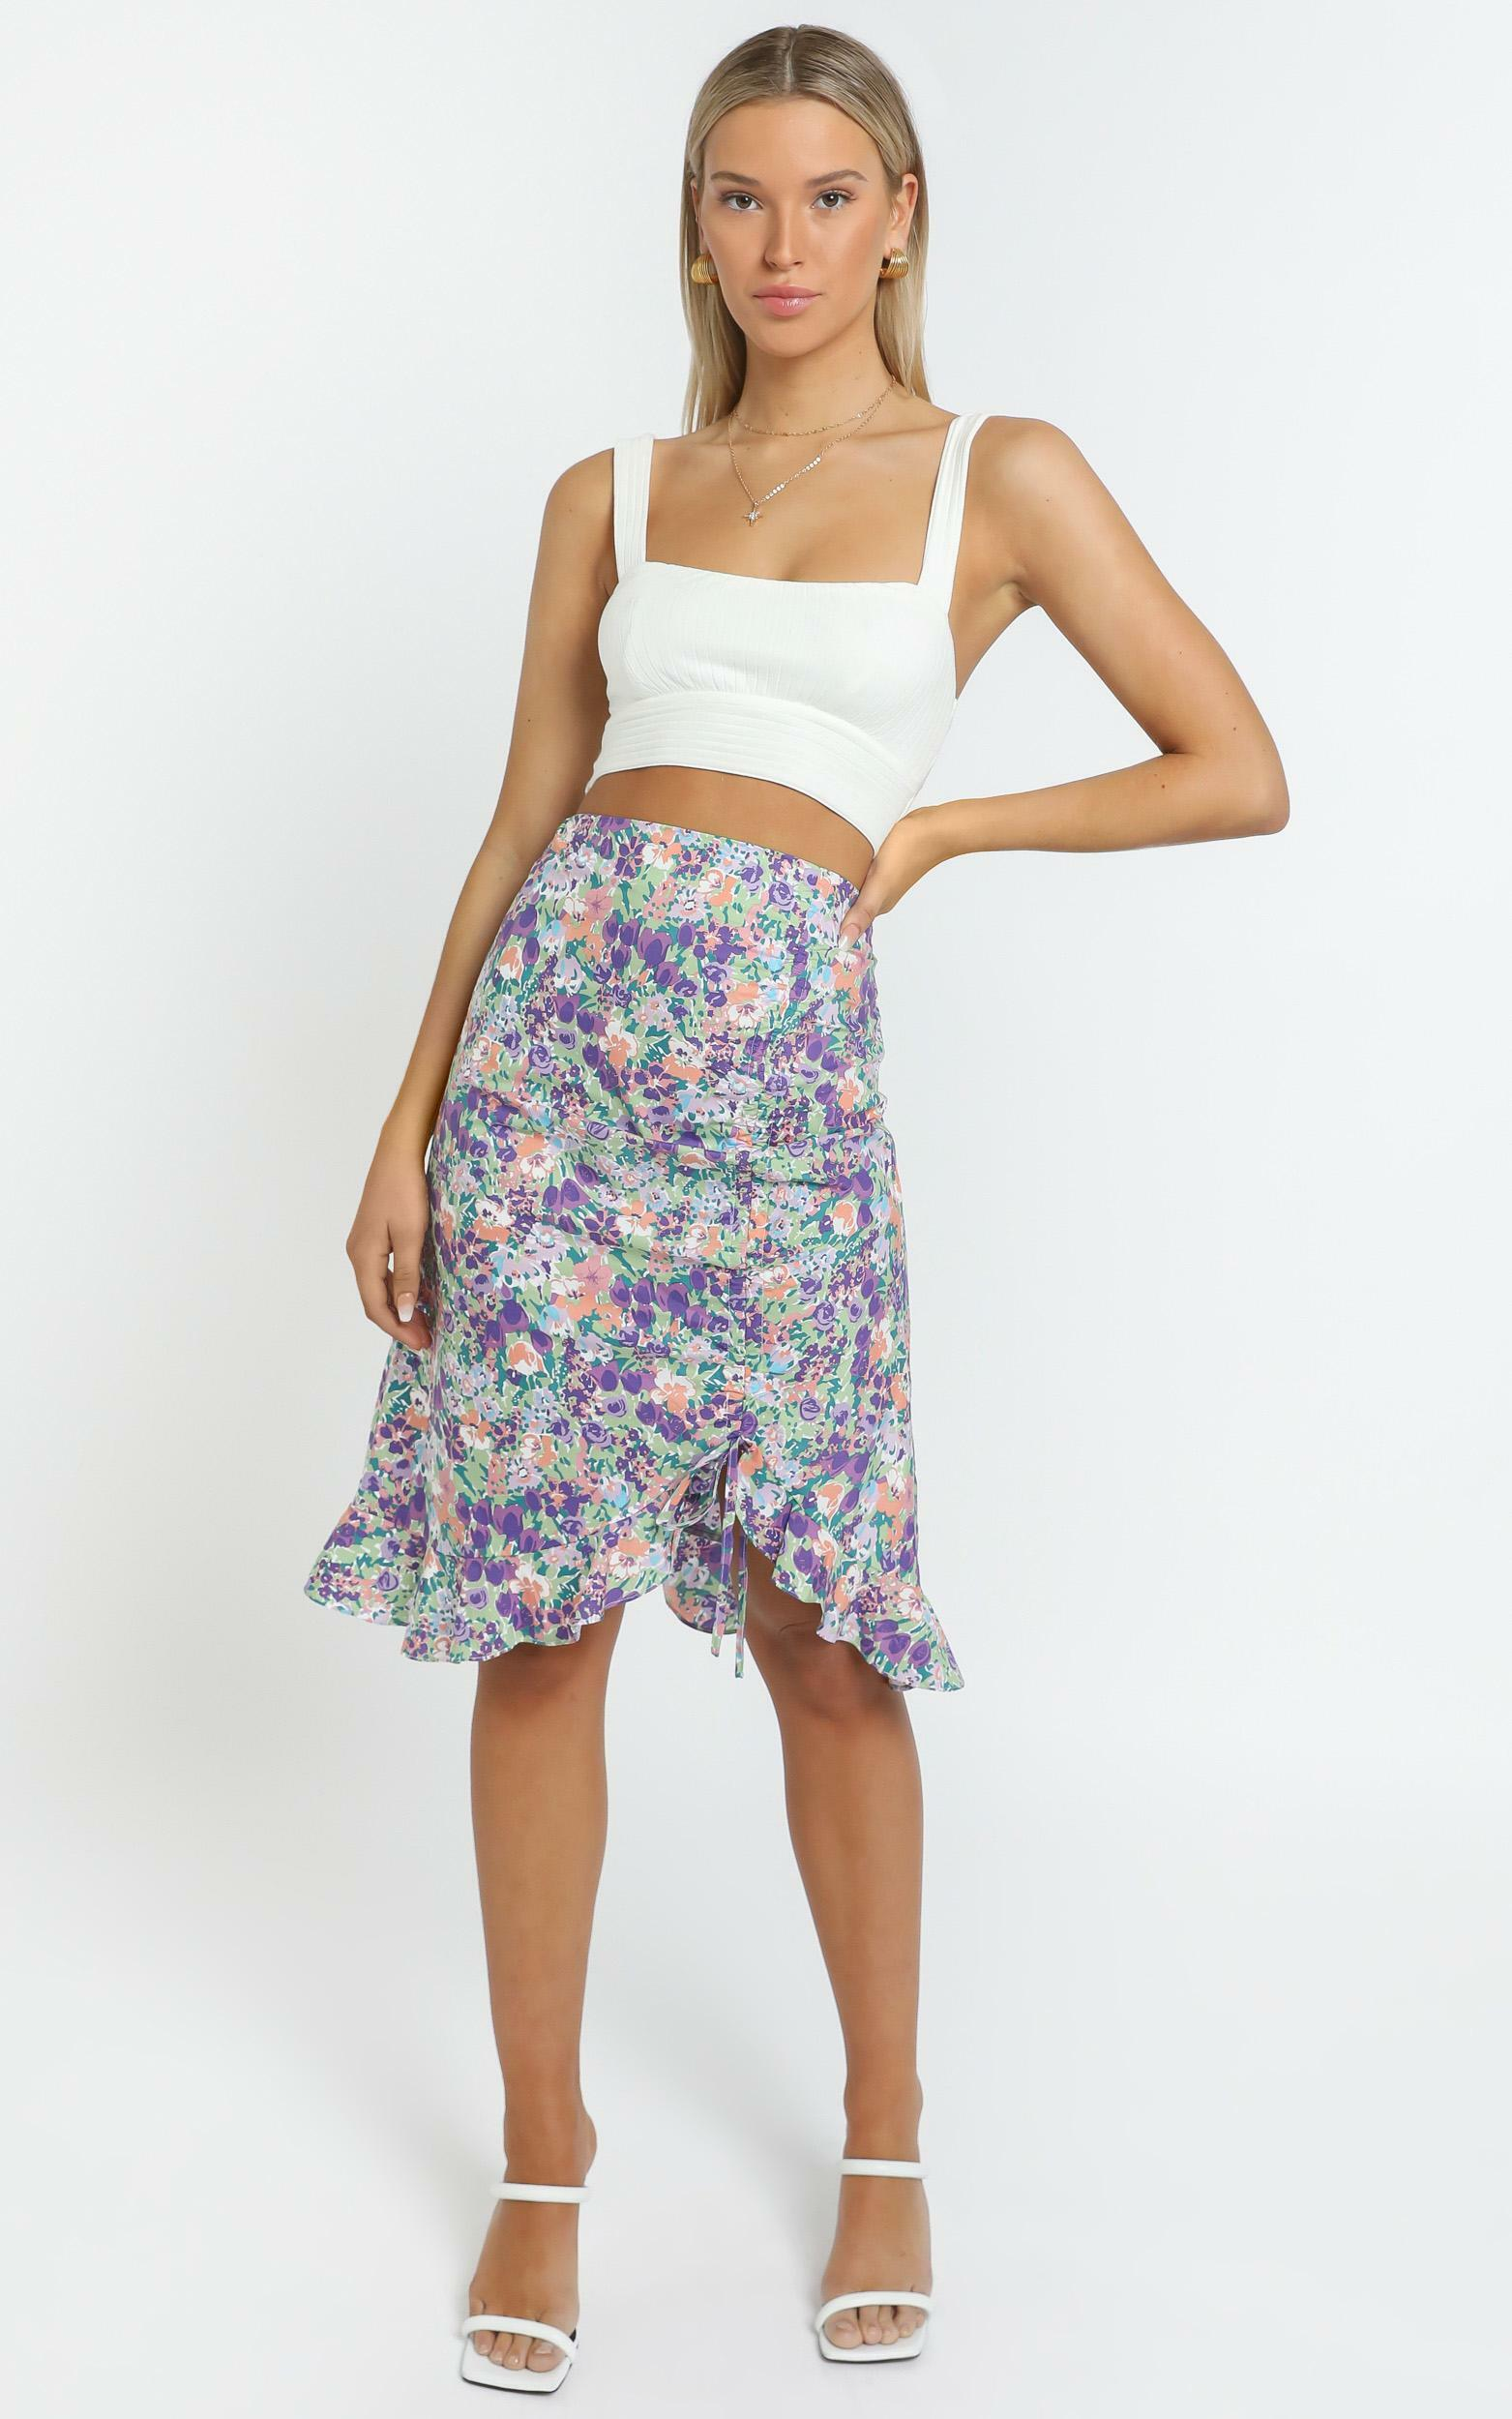 Albany Skirt in Purple Floral - 14 (XL), Purple, hi-res image number null